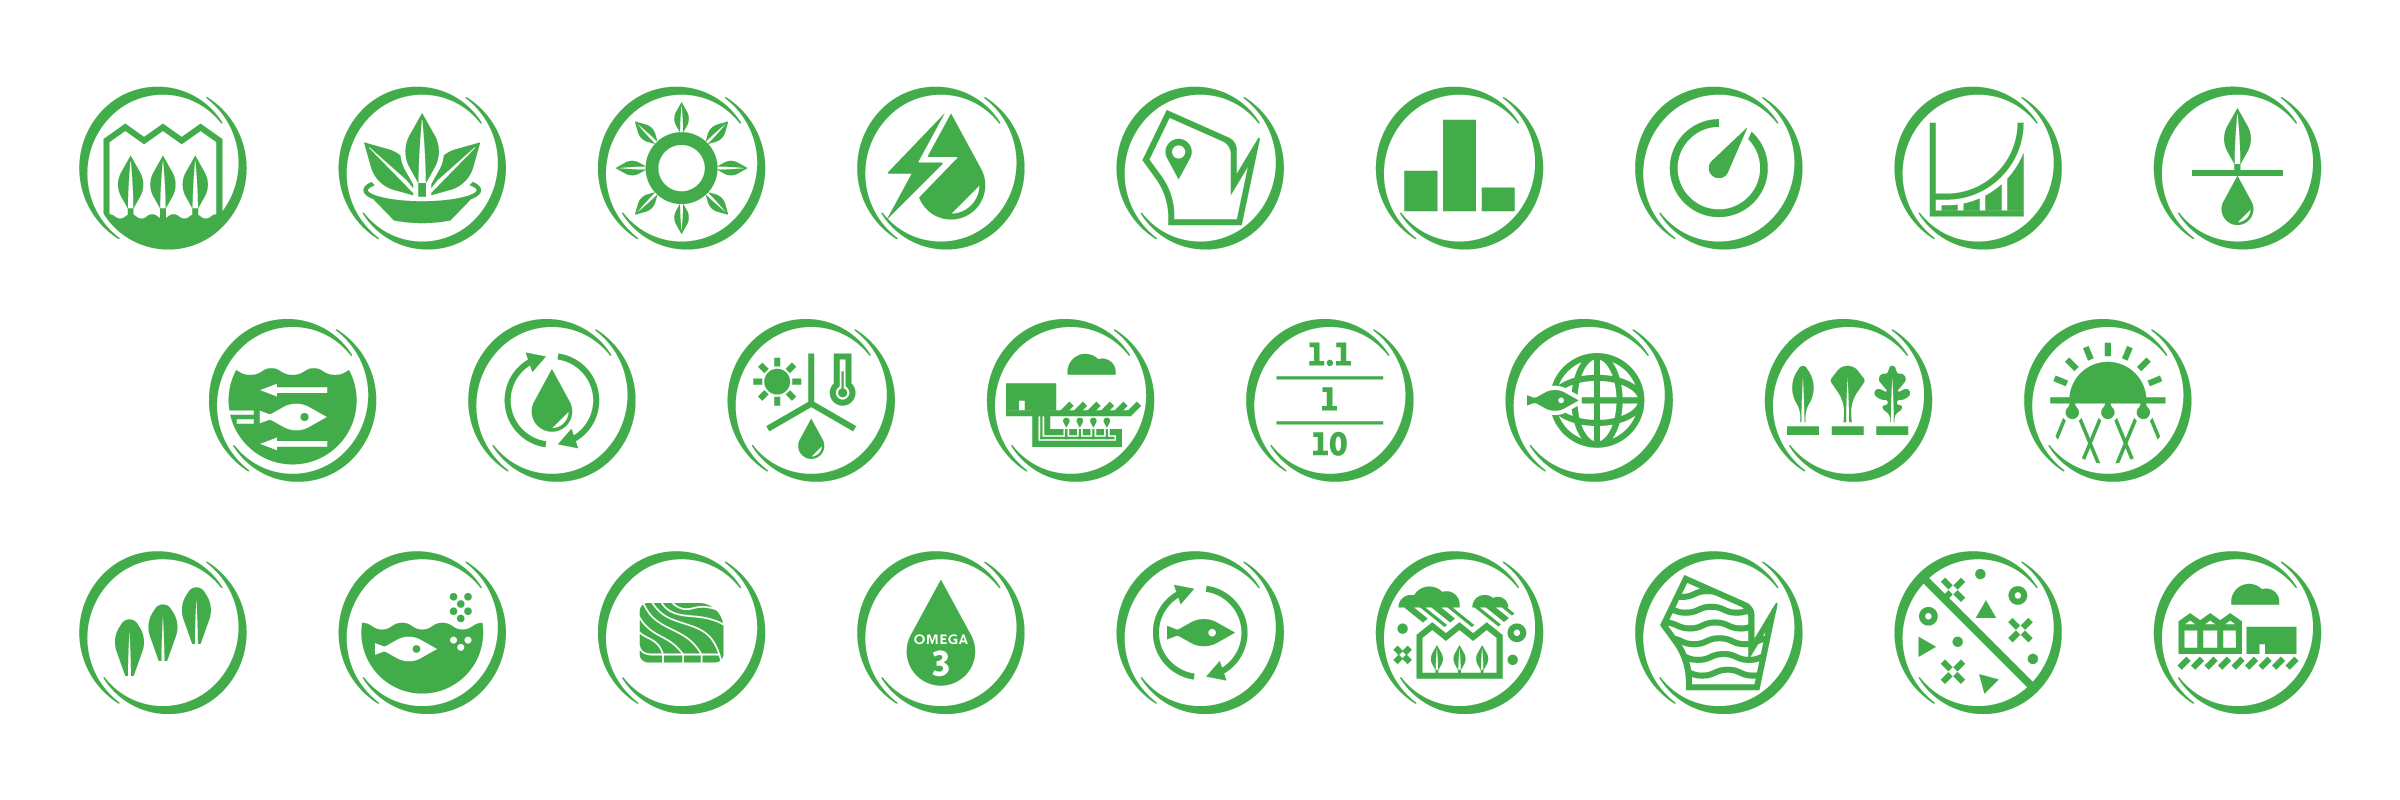 superior fresh designed icon set